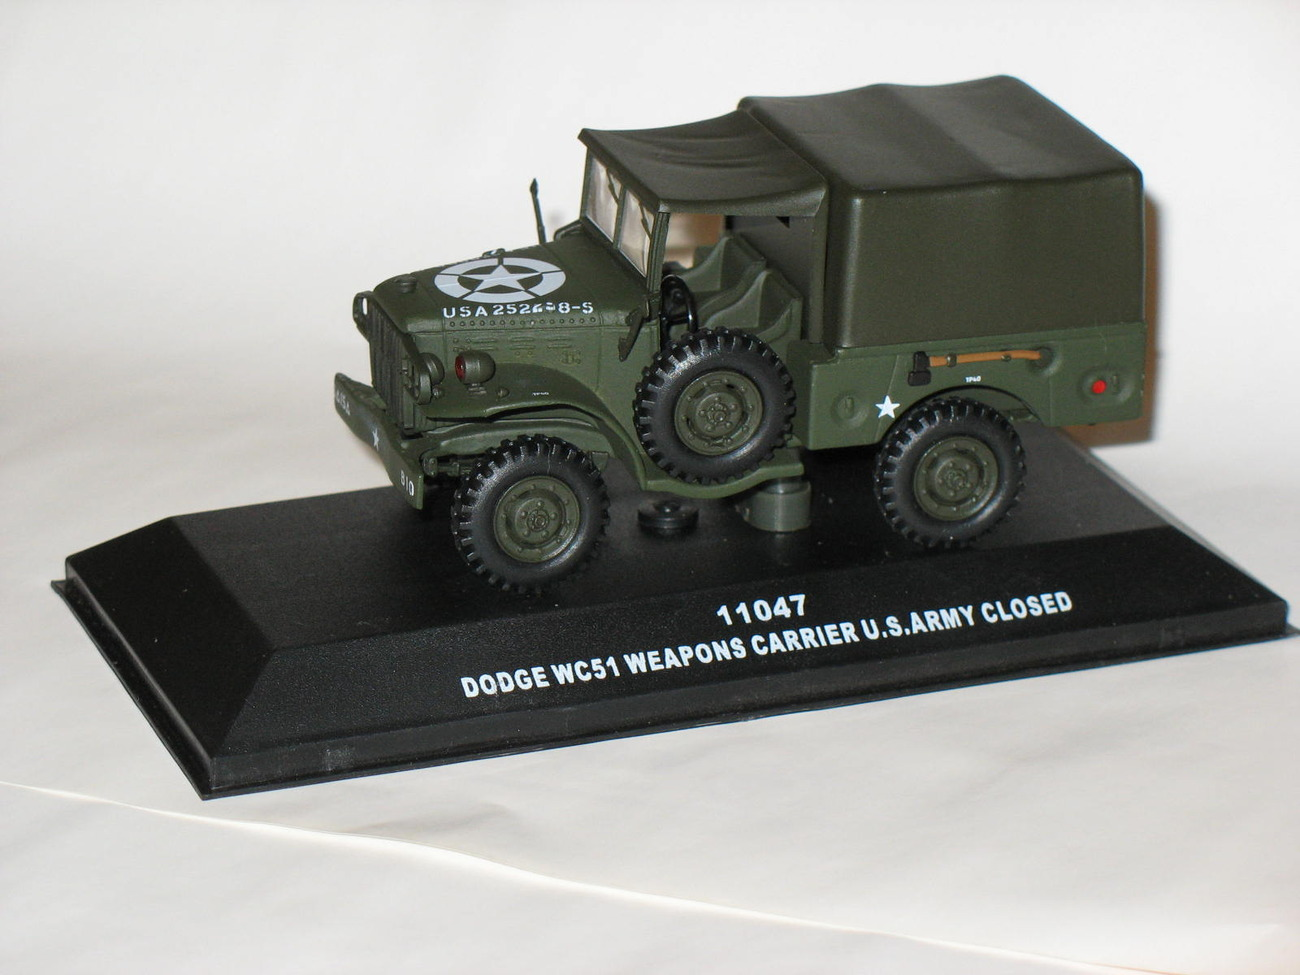 Dodge wc51 weapons carrier u.s. army closed.b